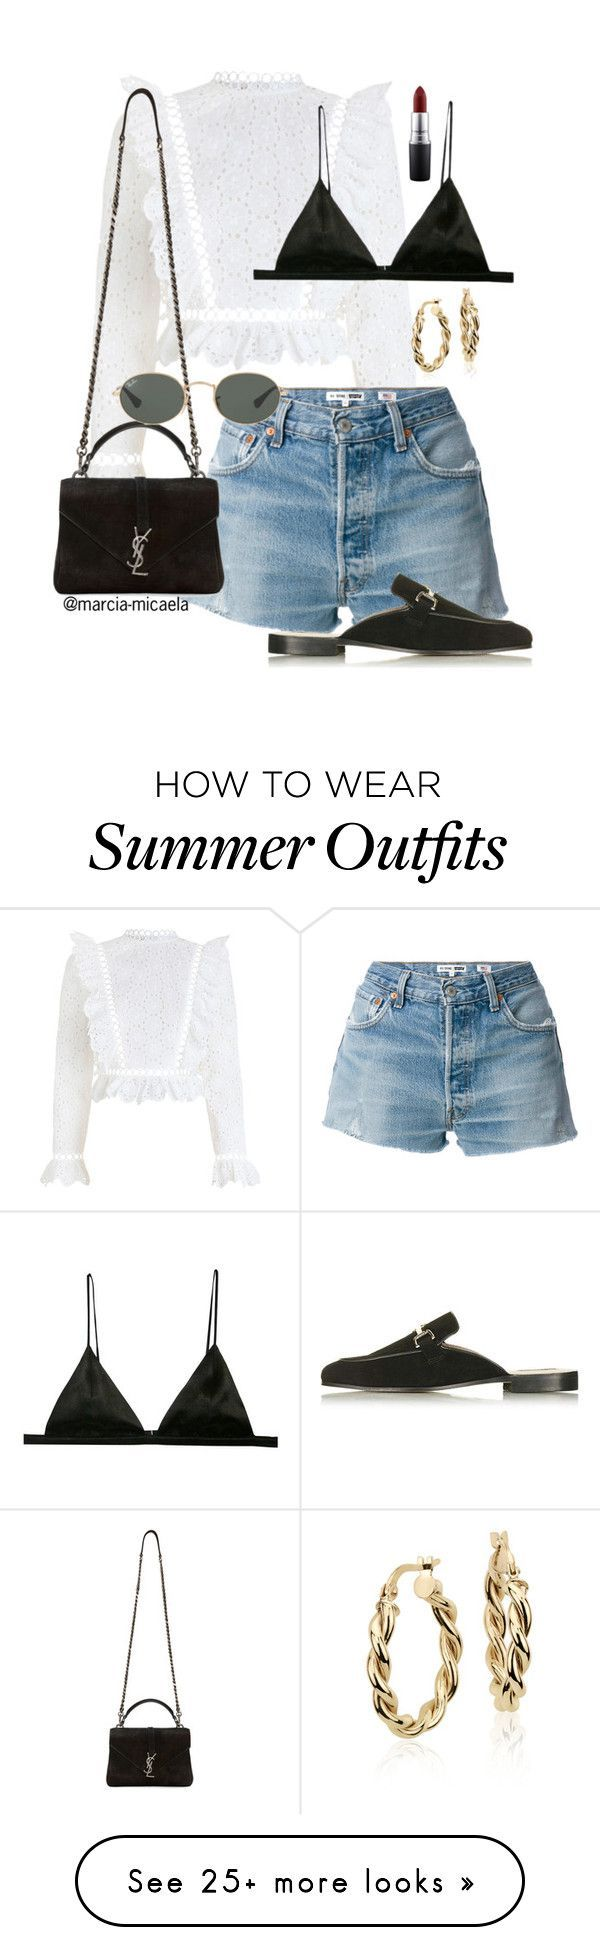 Summer Outfits :  OOTD  by marcia-micaela on Polyvore featuring Zimmermann RE/DONE Yves